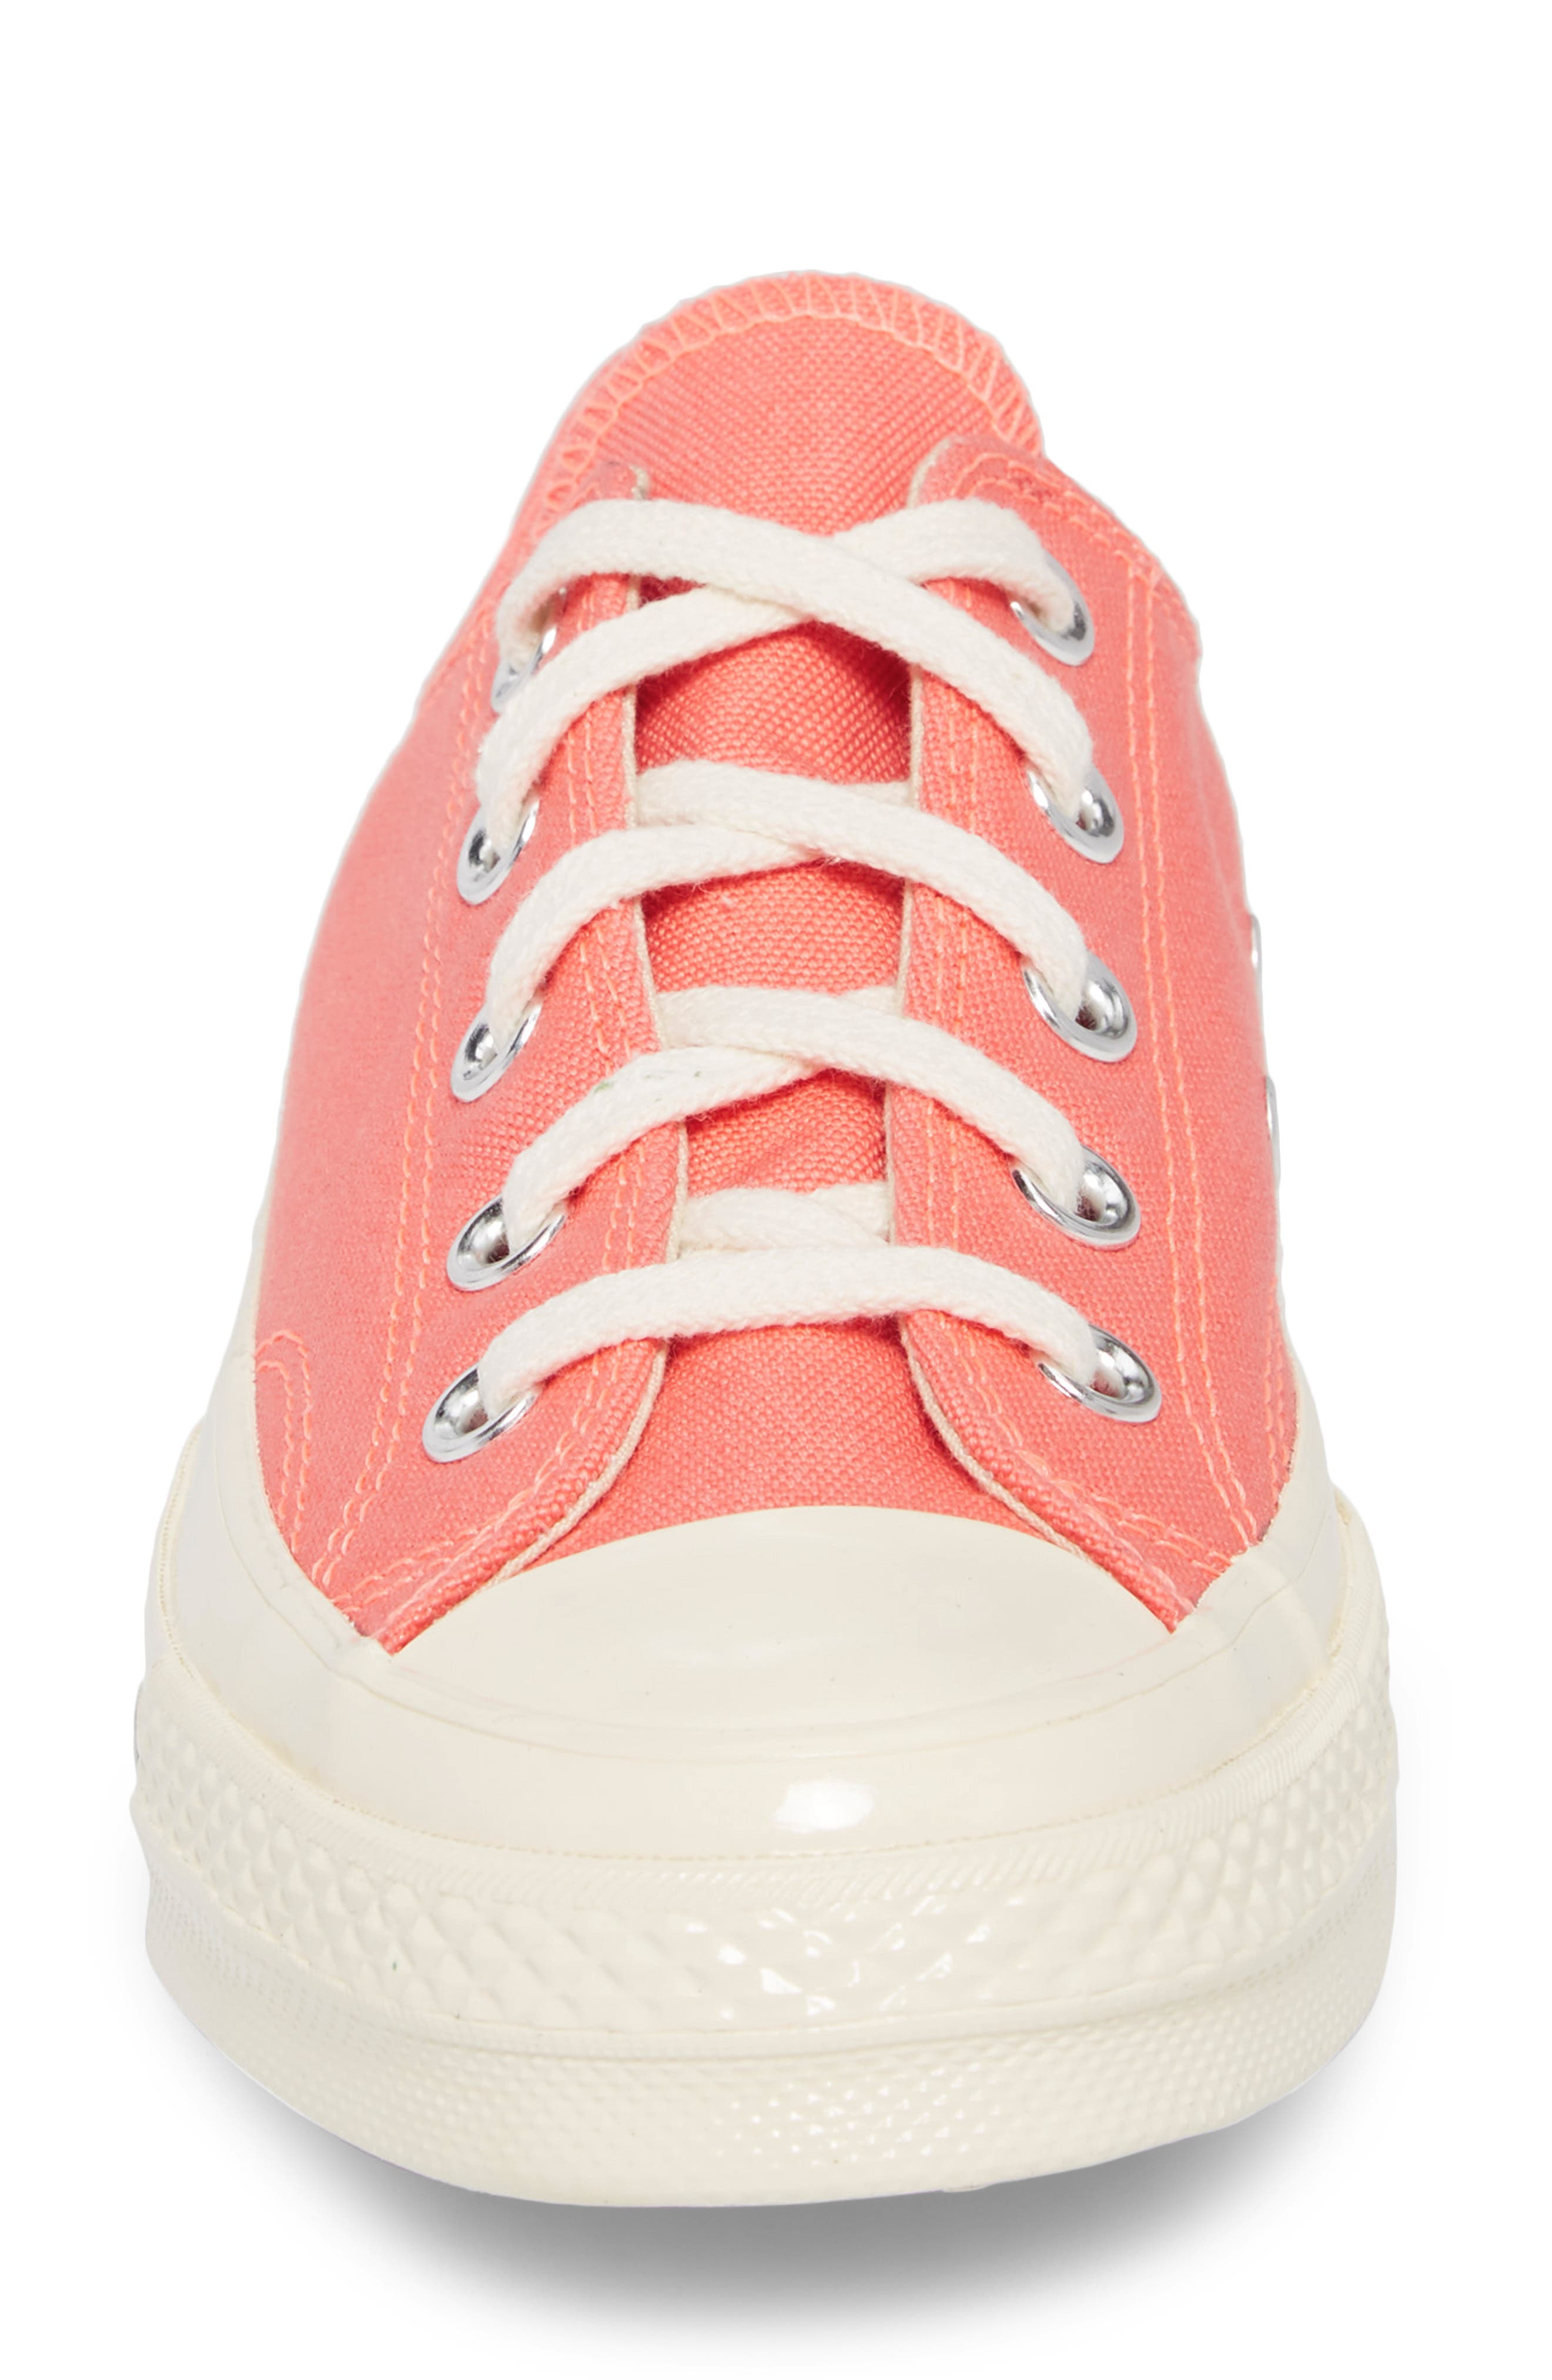 Chuck Taylor<sup>®</sup> All Star<sup>®</sup> '70s Brights Low Top Sneaker,                             Alternate thumbnail 4, color,                             CRIMSON PULSE